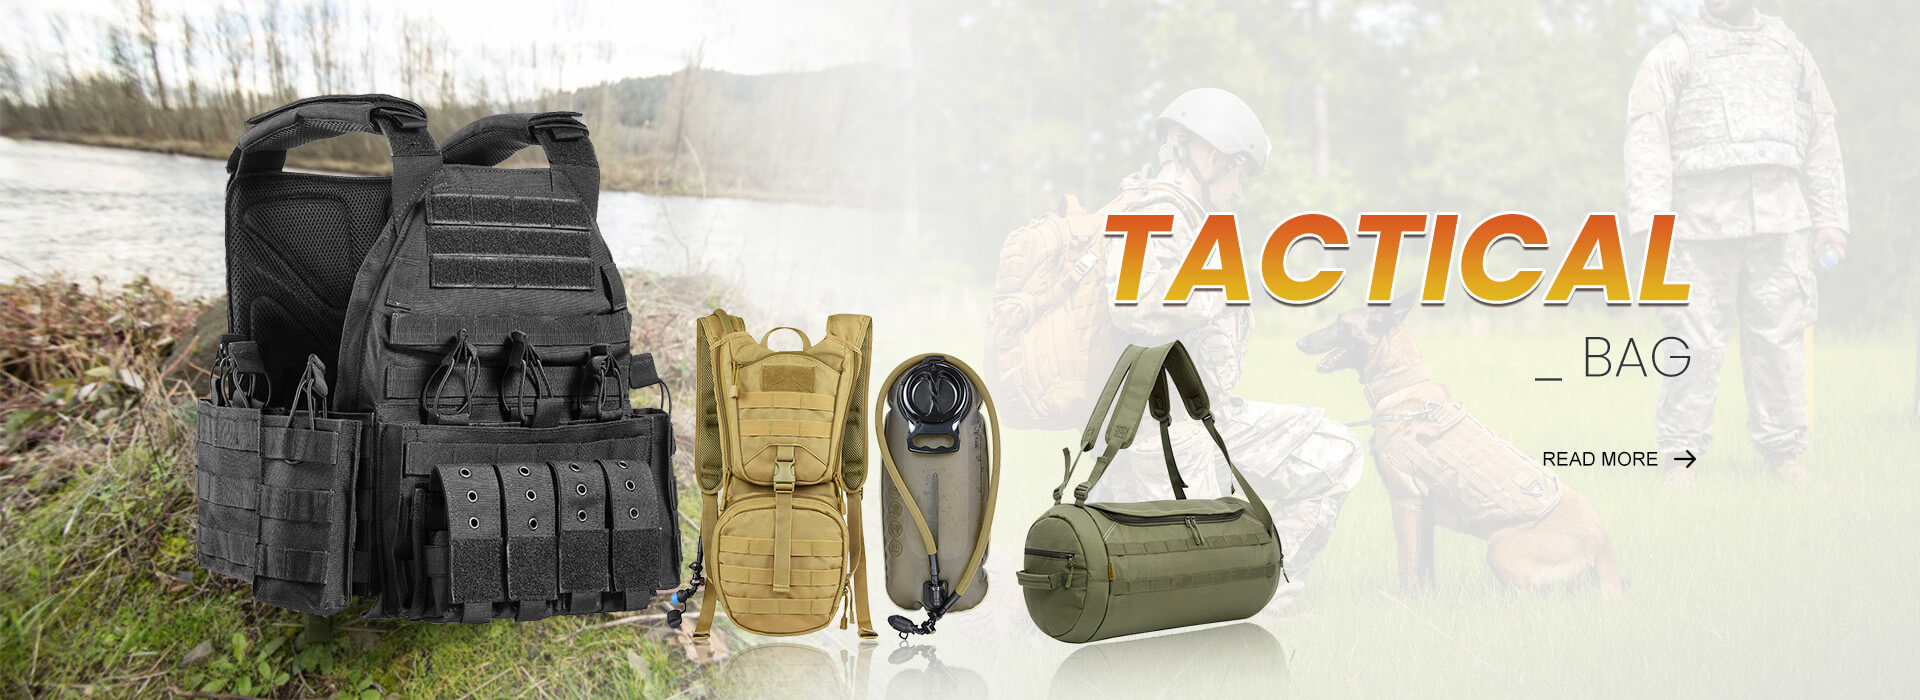 Tactical_bag